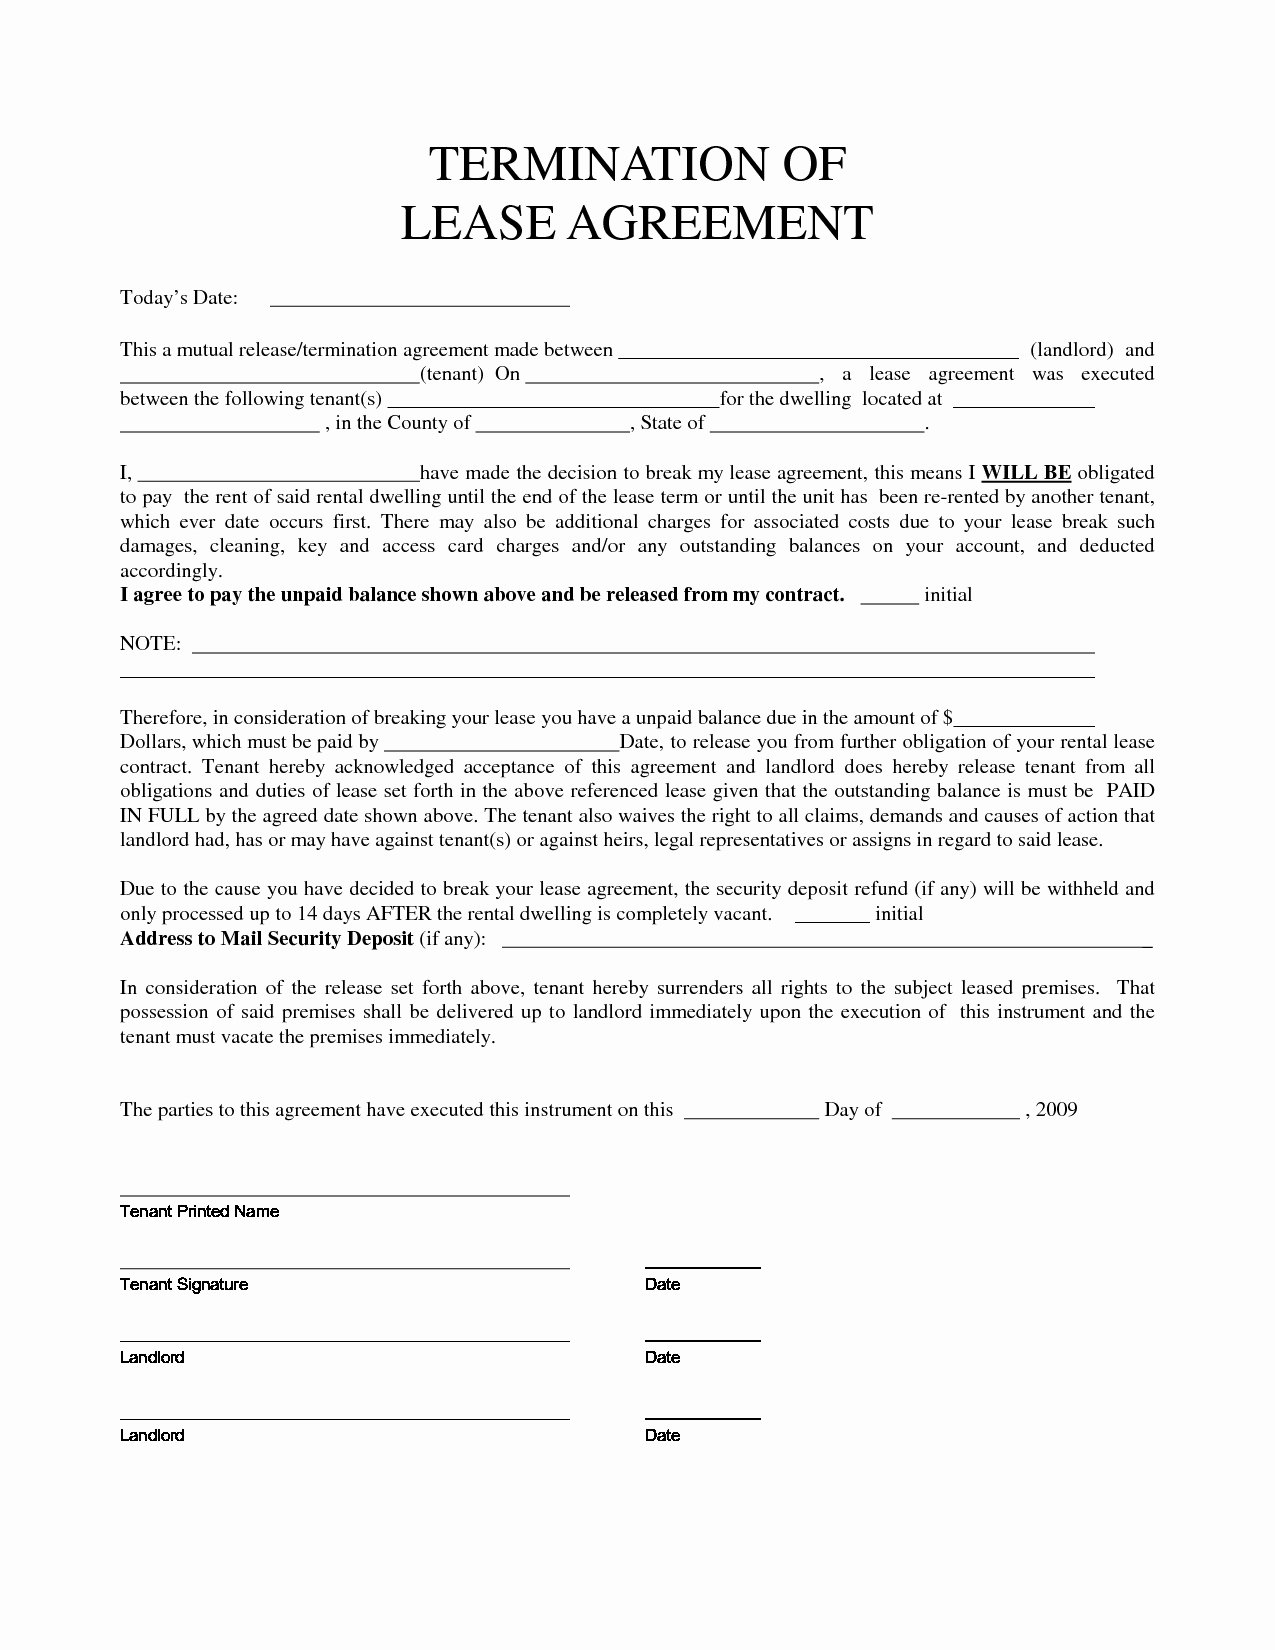 Early Termination Lease Agreement Template Templates